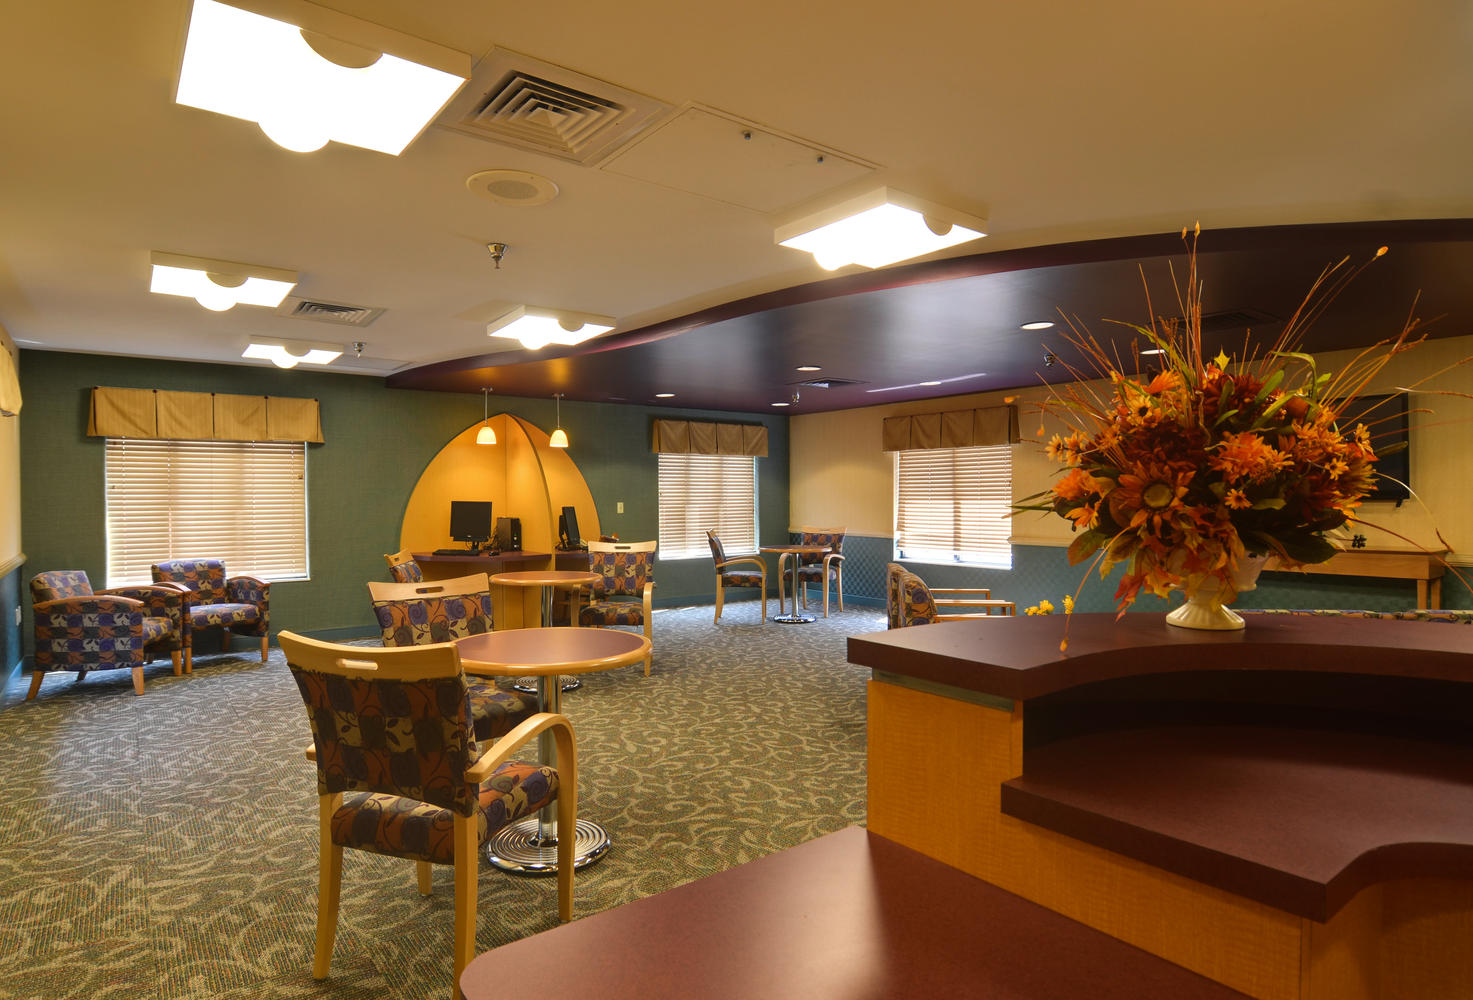 Stonerise Clarksburg skilled nursing home and transitional care facility internet cafe